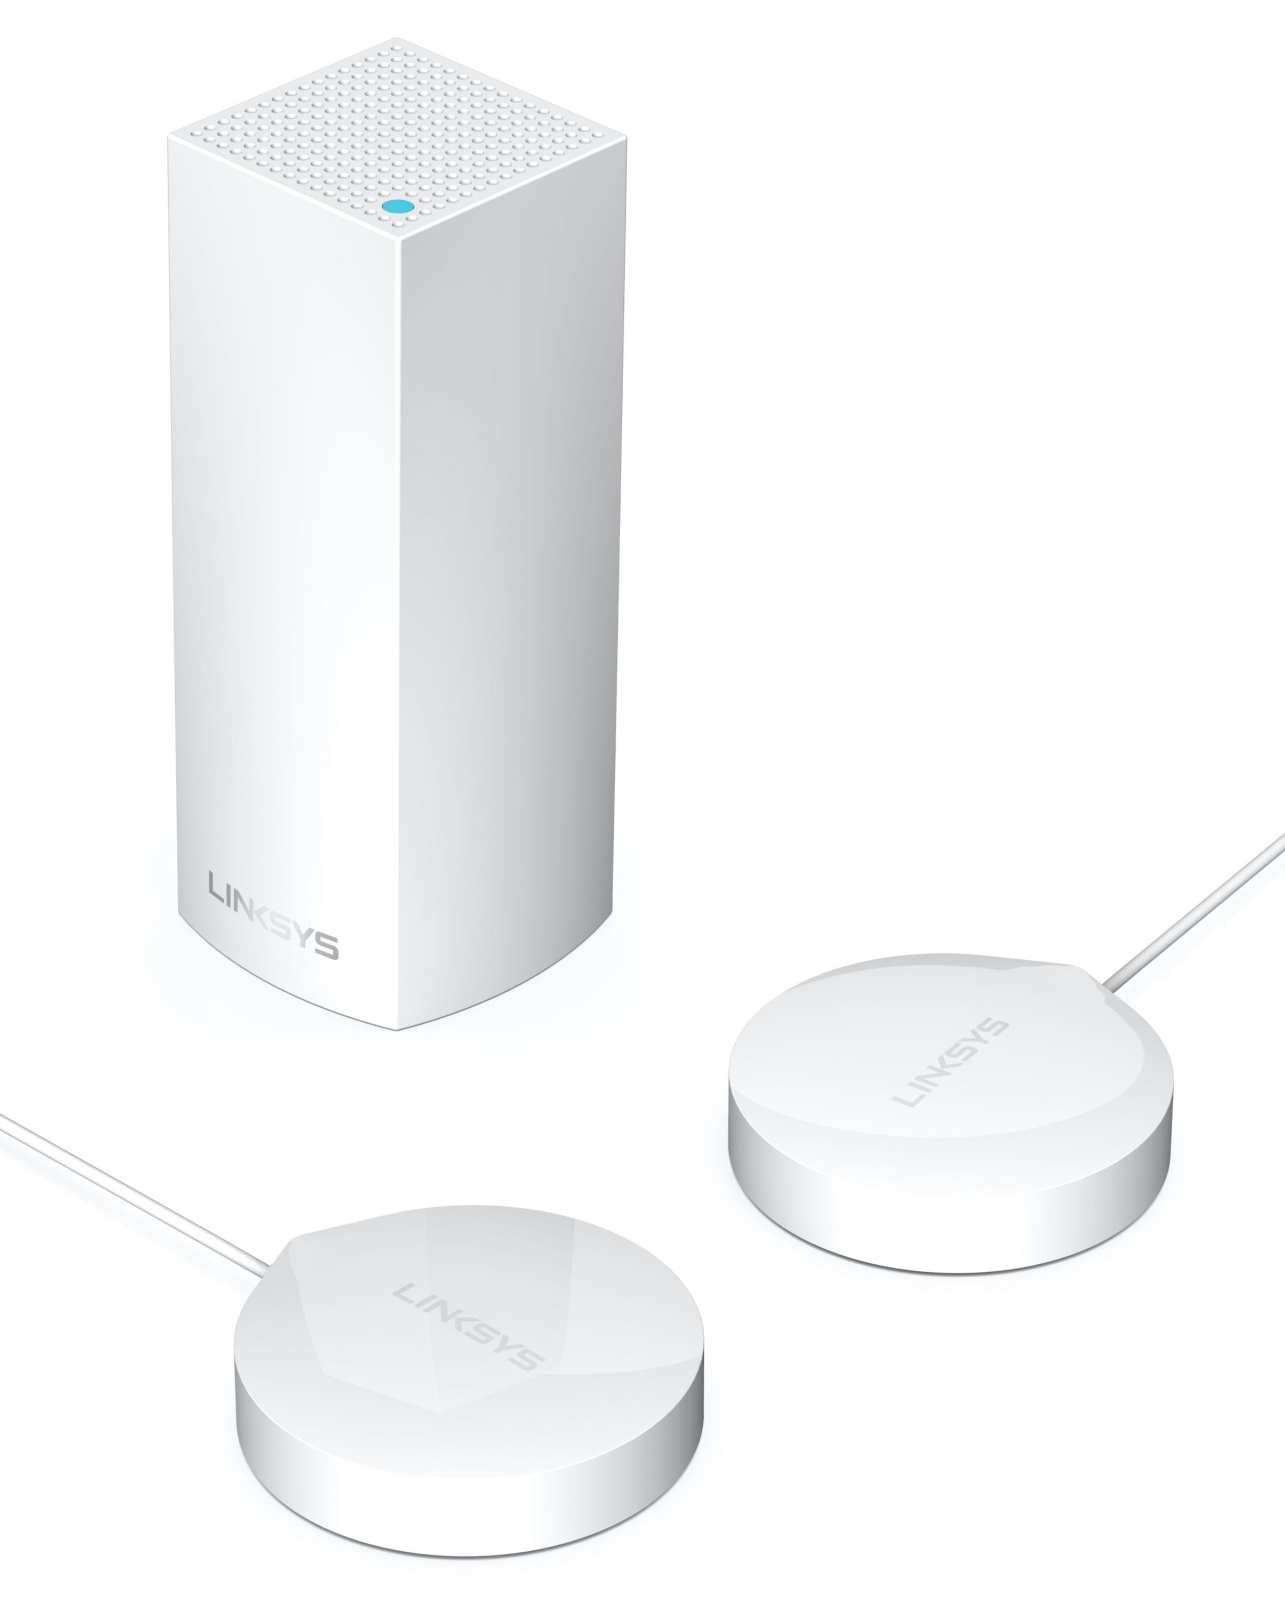 Linksys Wellness Pods